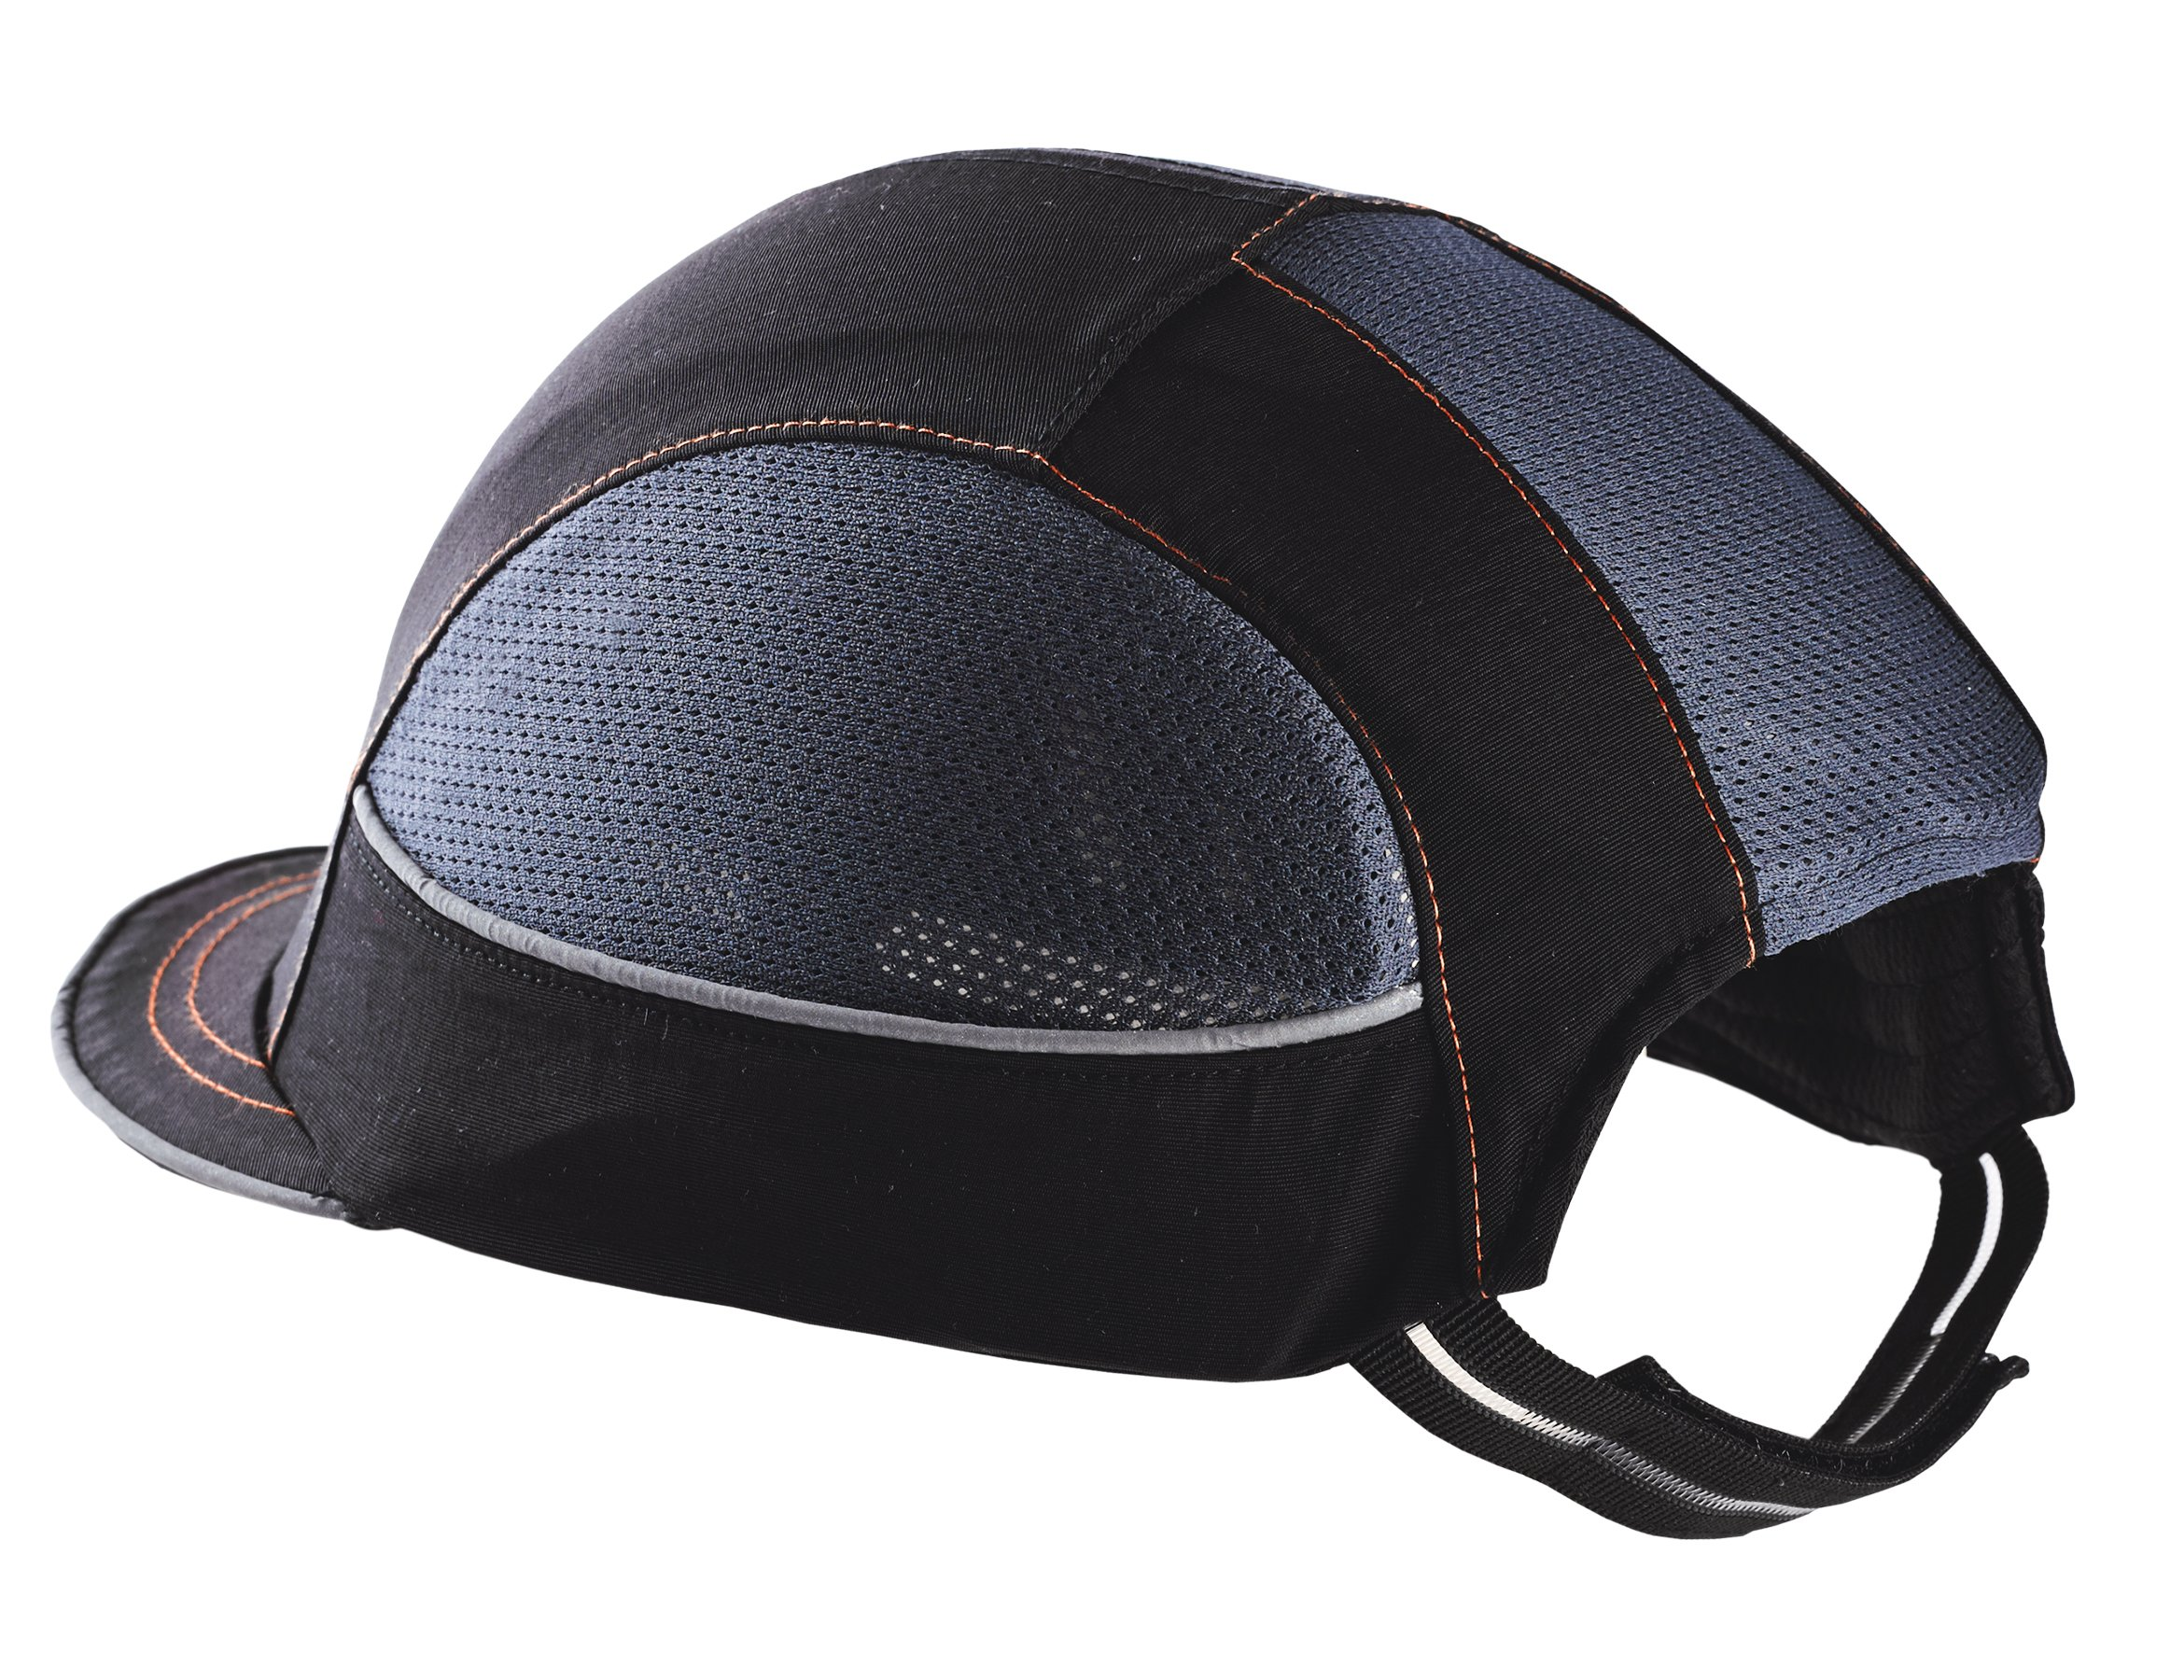 Safety Bump Cap, Baseball Hat Style, Breathable Head Protection, Long Brim, Skullerz 8950 by Ergodyne (Image #4)